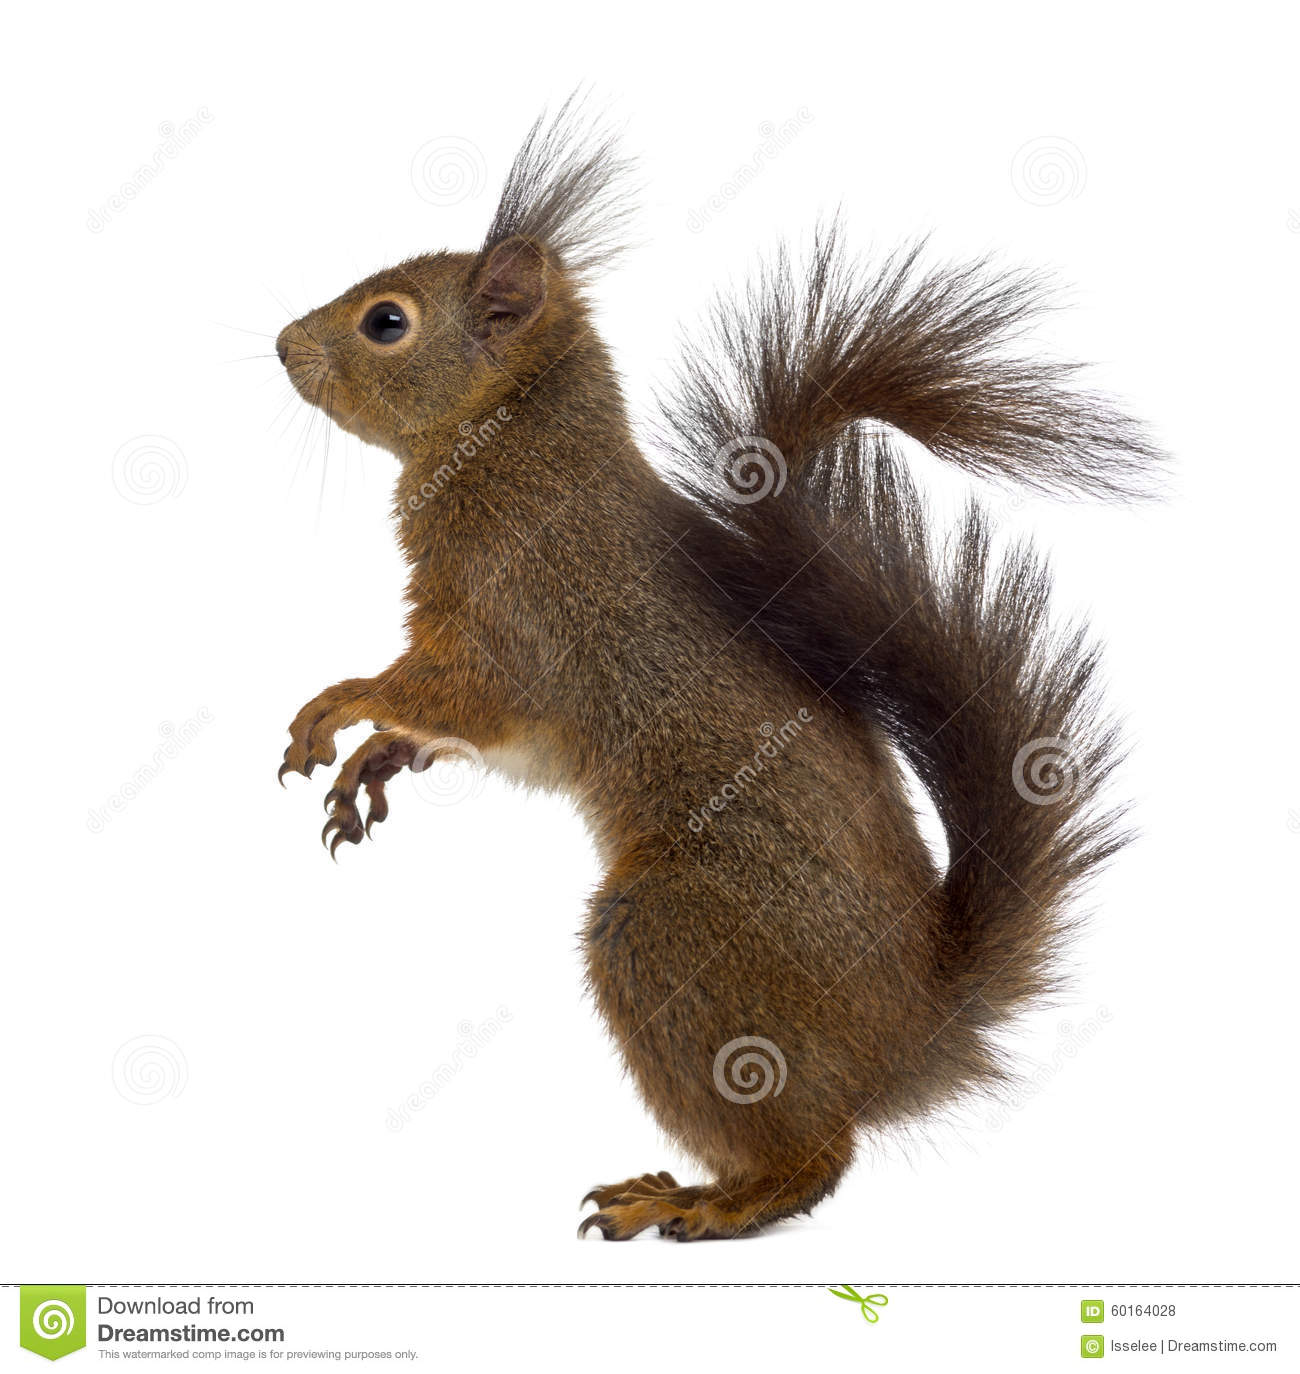 Red squirrel in front of a white background.